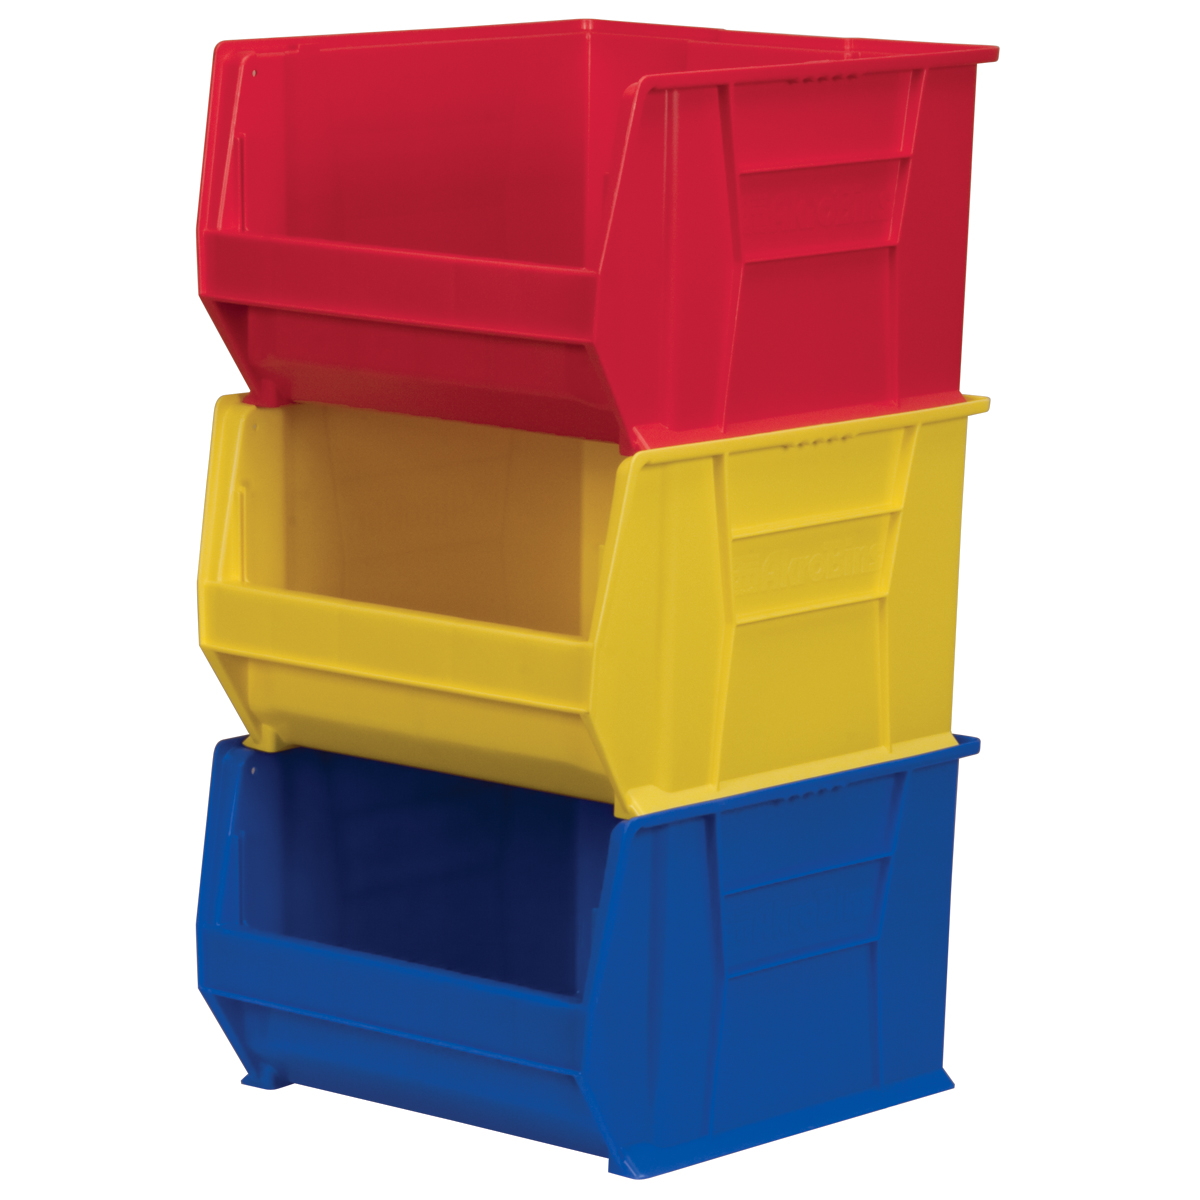 30283-stacked.jpg  sc 1 st  Industrial Shelving Systems & Plastic Storage Bins- Plastic Totes| Industrial Shelving Systems